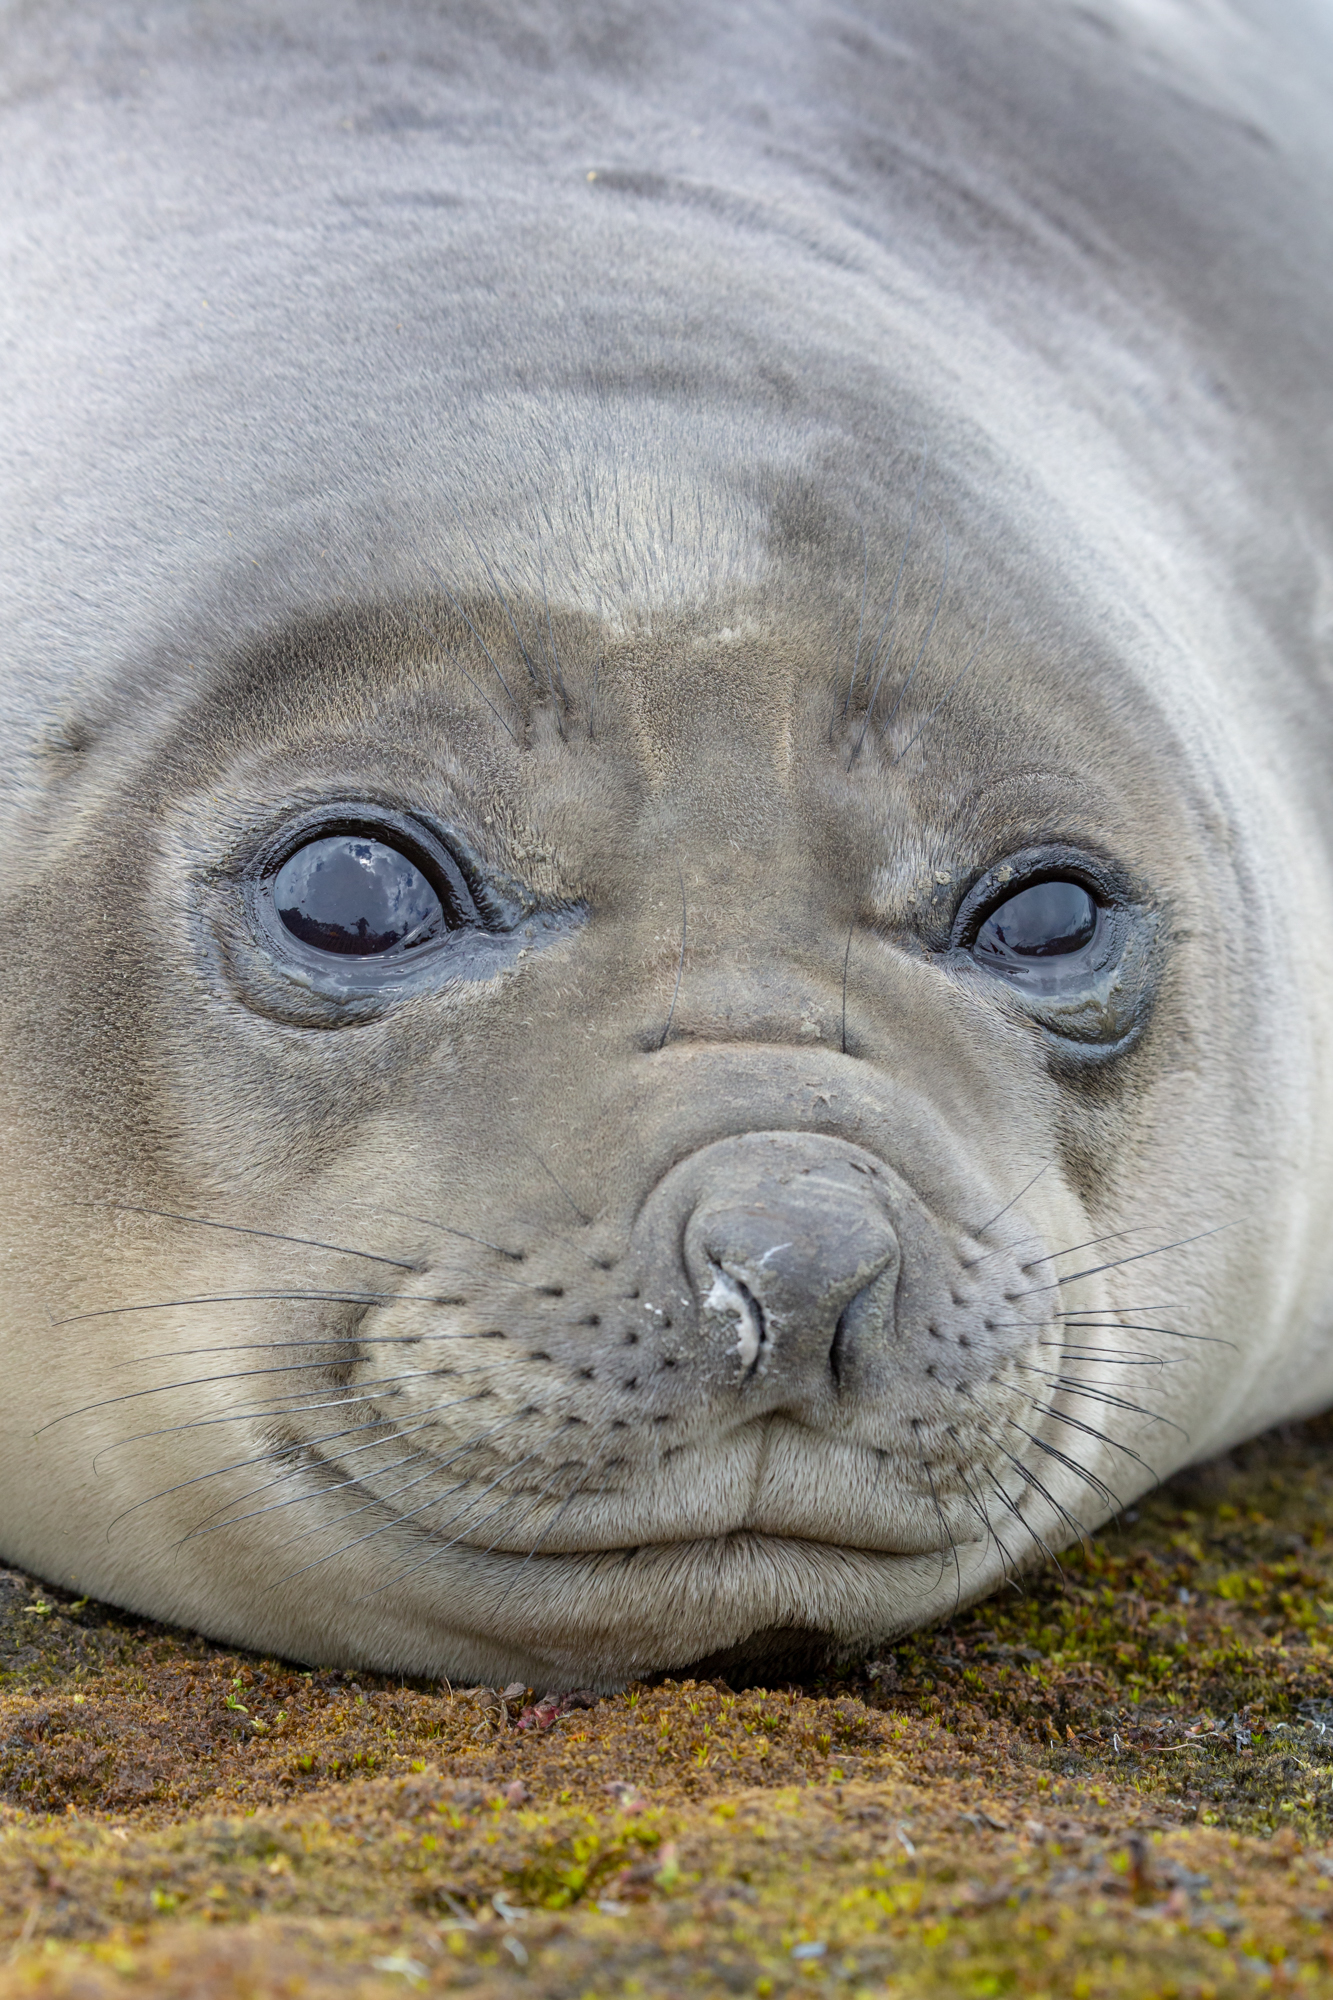 "A notoriously blubbery southern elephant seal ""weaner"" rests on the shores of South Georgia island, looking out towards the vast Southern Ocean. Despite South Georgia's remote and rugged geography, as much as 54% of the world population of southern elephant seals are born on its shores.  Come November, the beaches are filled with hundreds of ""weaners"" who get their nickname from the fact that they have just been weaned from their mothers' milk. Though penguins take the top spot for the silliest creatures in South Georgia, the ""weaners"" with their clogged noses, rude sound effects, and helplessly fat bodies take a close second. Having just been left by their mothers, it is not uncommon to find yourself surrounded by ""weaners"" looking hopefully up at you hoping that maybe you too can offer them some milk.  With faces like these, it is difficult to imagine that the species was almost hunted to extinction for the oil in their blubber following Captain Cook's account of the island in the 1700s. It was not until 1964 that people enacted a ban on the hunt, allowing elephant seals to slowly recover on the beaches of the Southern isle. Seeing beaches full of healthy elephant seal ""weaners"" is a hopeful sight that cannot be taken for granted.  The many success stories of conservation in South Georgia and the Falklands are diamonds in the rough of today's planet in peril. These stores give a glimpse into a wild world that once was, but also a world that can be resurrected from the ashes of our human-impacts. For many species and ecosystems all across the globe, no matter how daunting the task may seem, there is always hope for conservation. With a little nudge from people, nature has the power to bounce back in ways that we cannot even imagine."